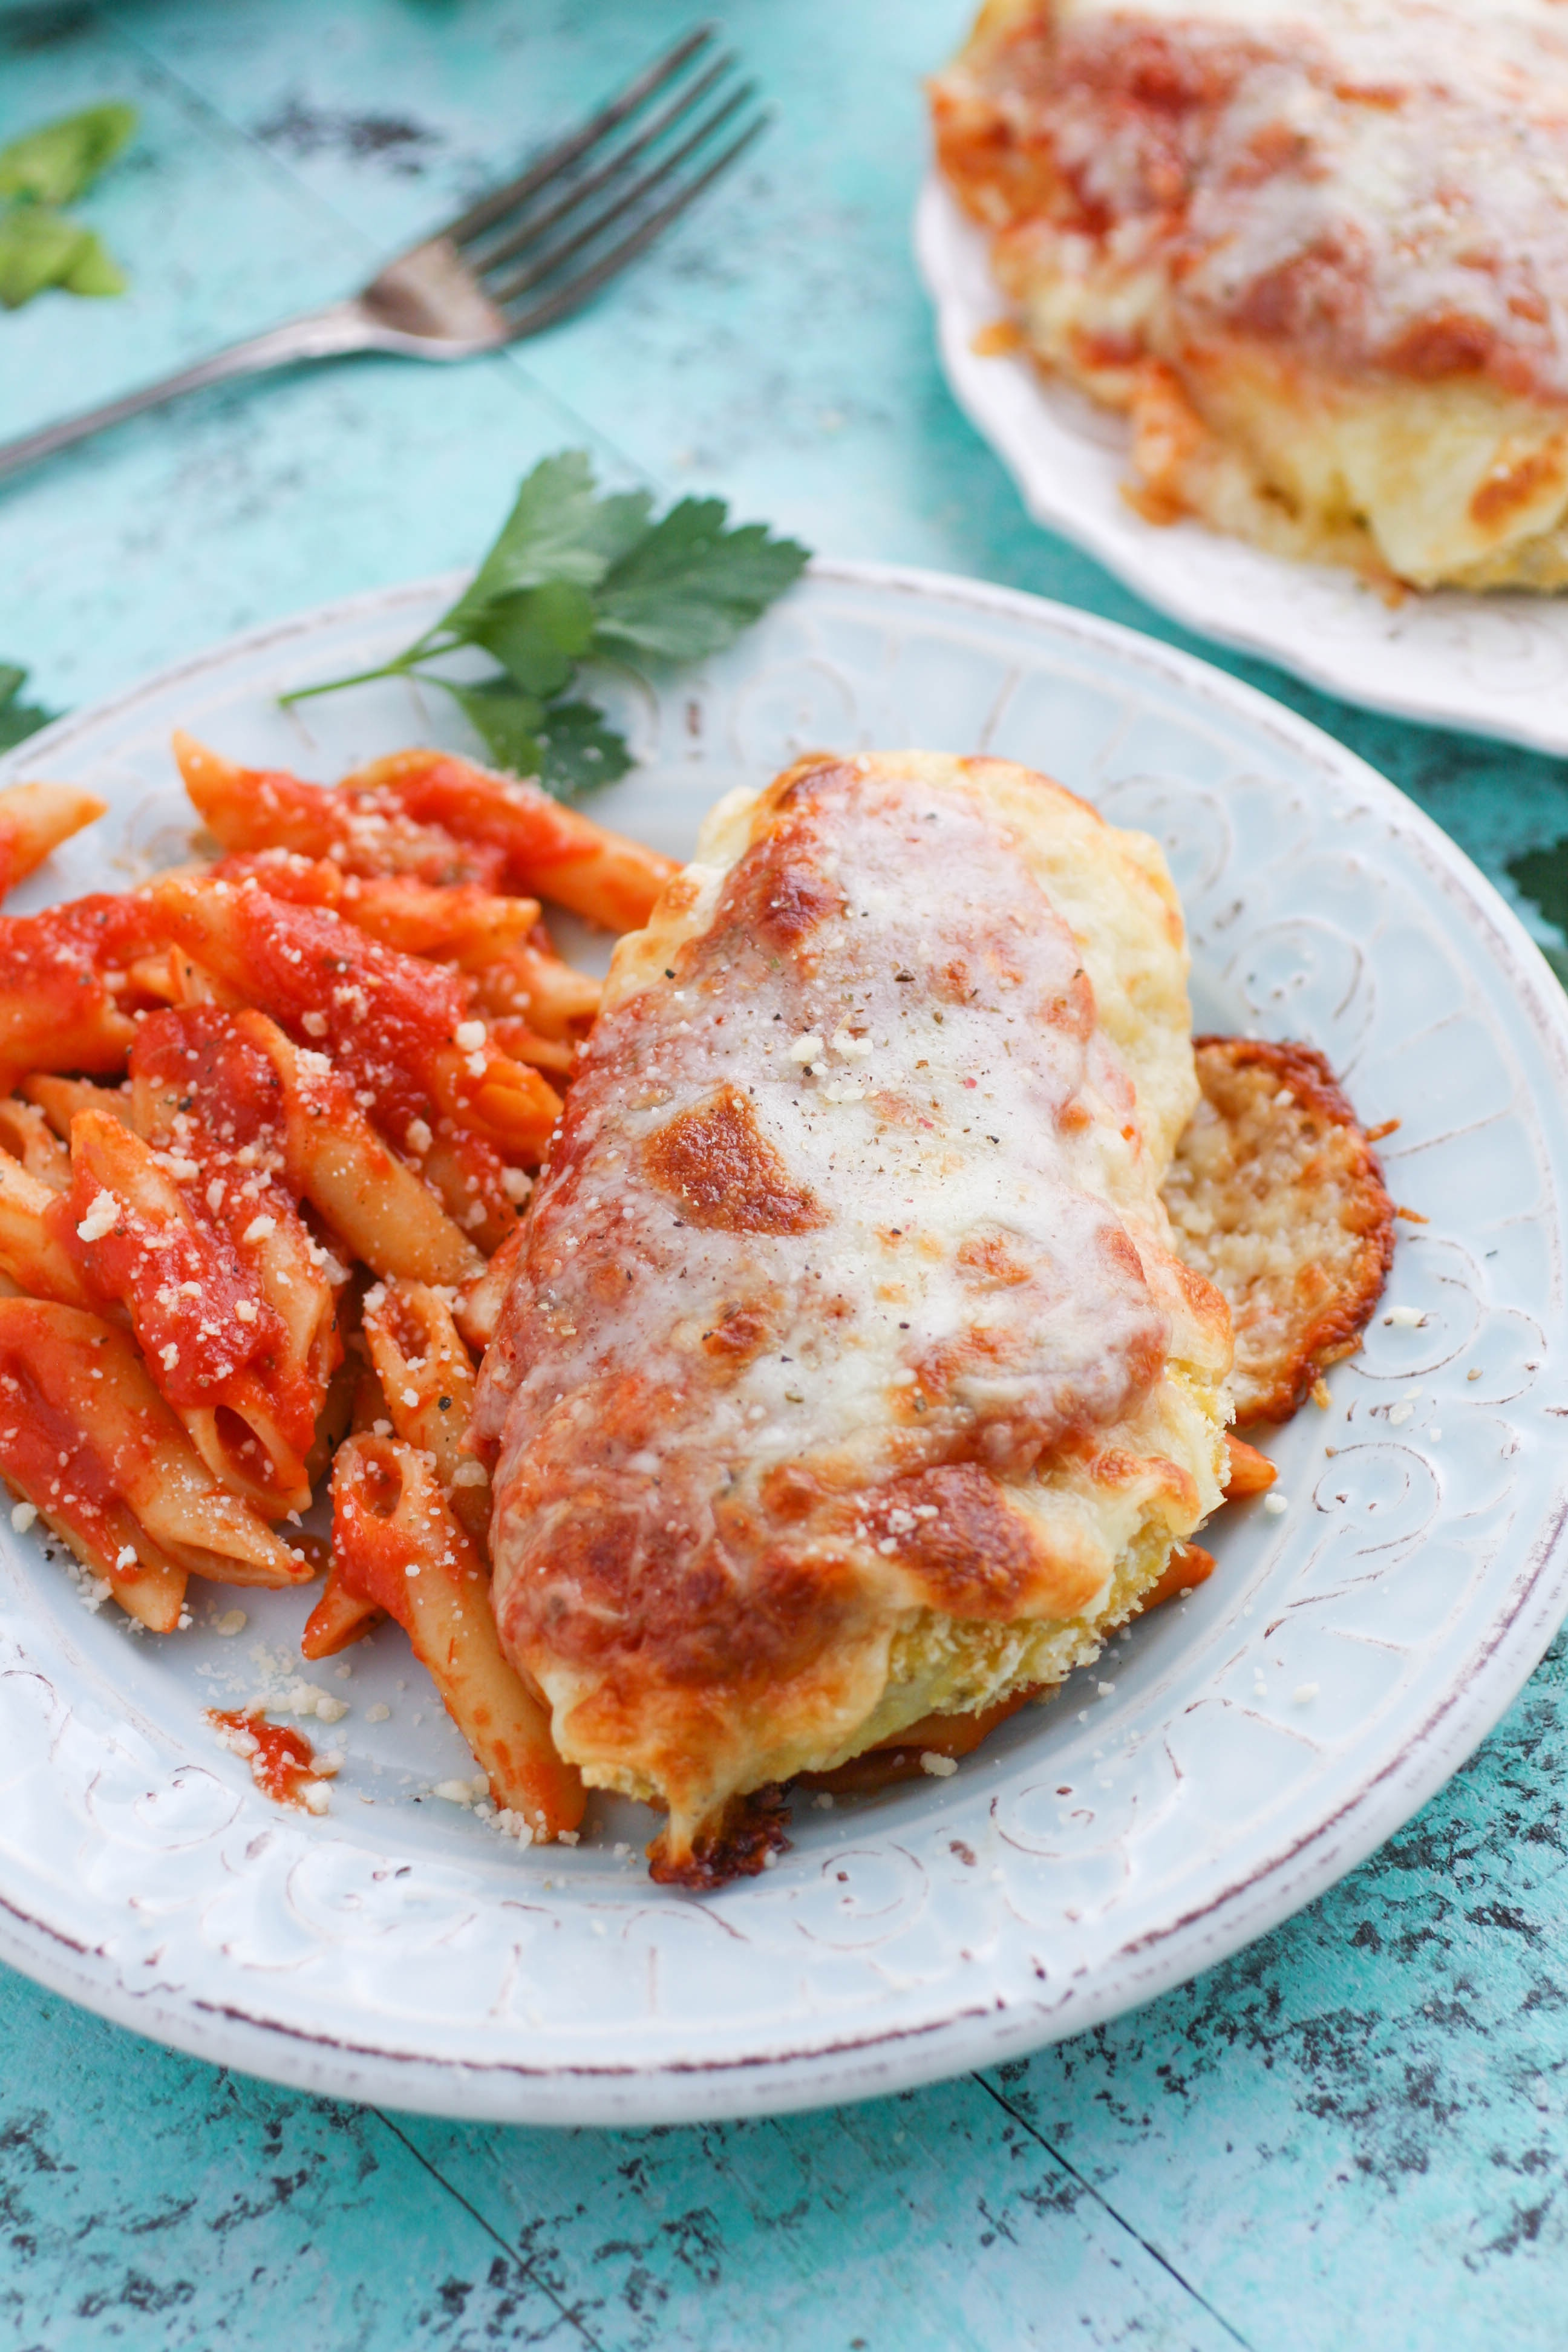 Classic Baked Chicken Parmesan is a favorite you'll love to serve. Classic Baked Chicken Parmesan is easy to make at home and will become a favorite, for sure!